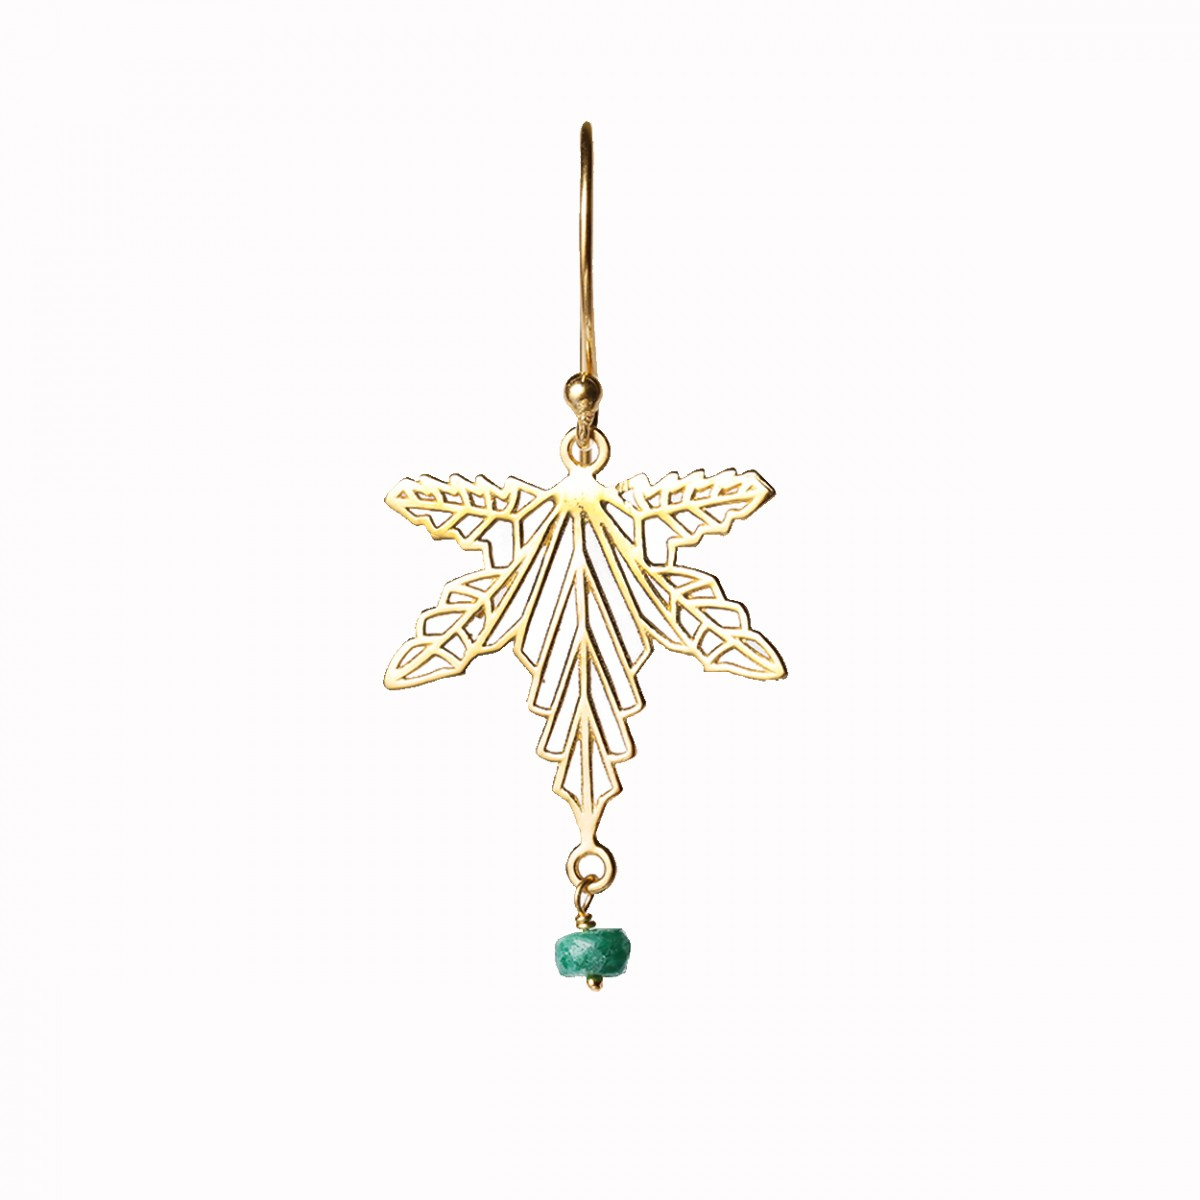 Gemstone Leaf Pendant Earring - Emerald